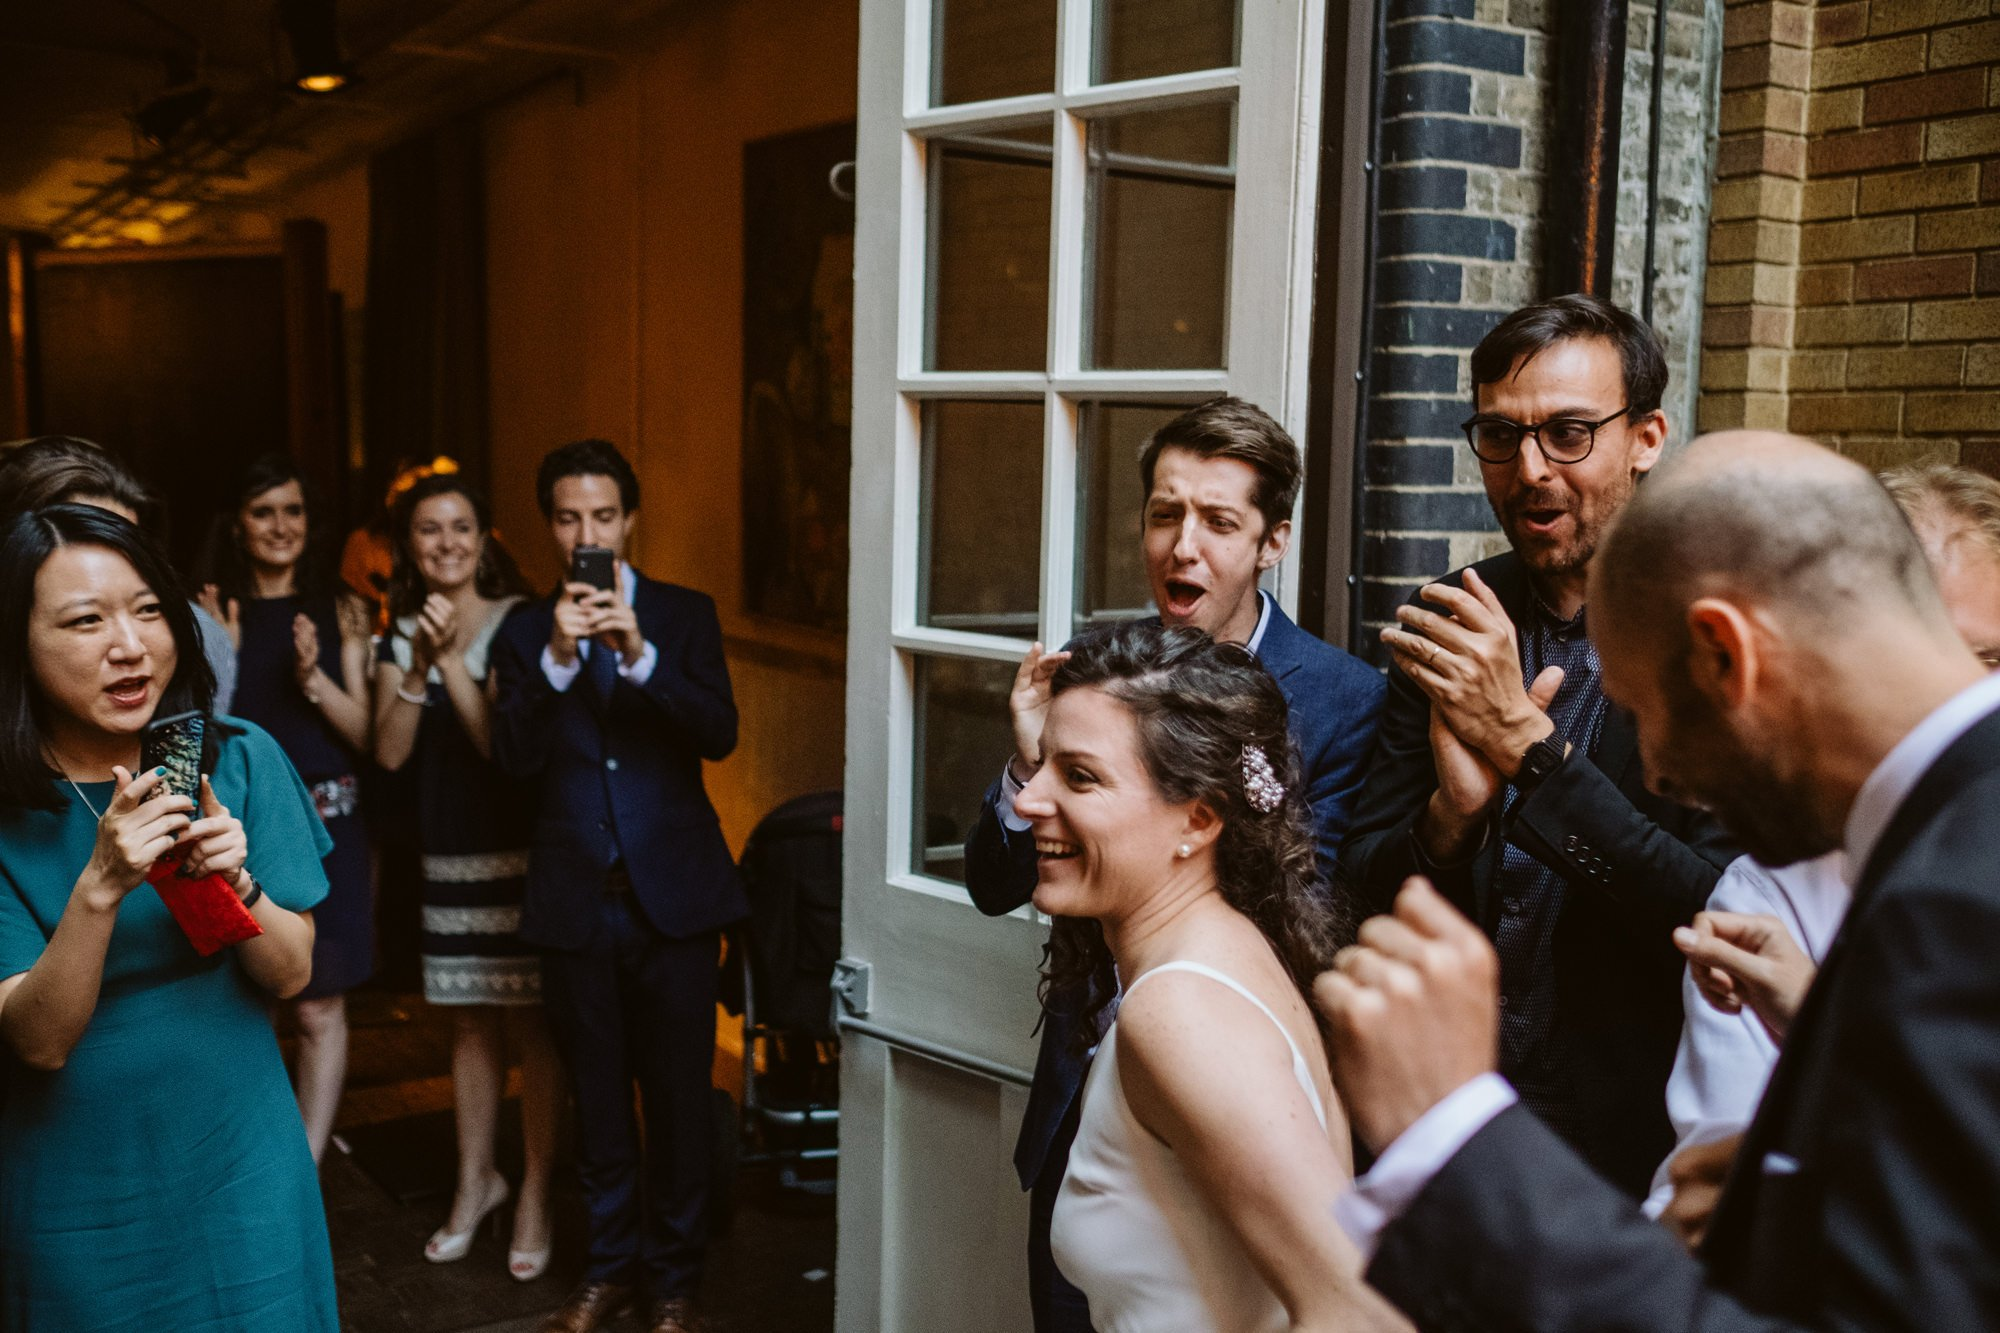 wedding tanner warehouse london